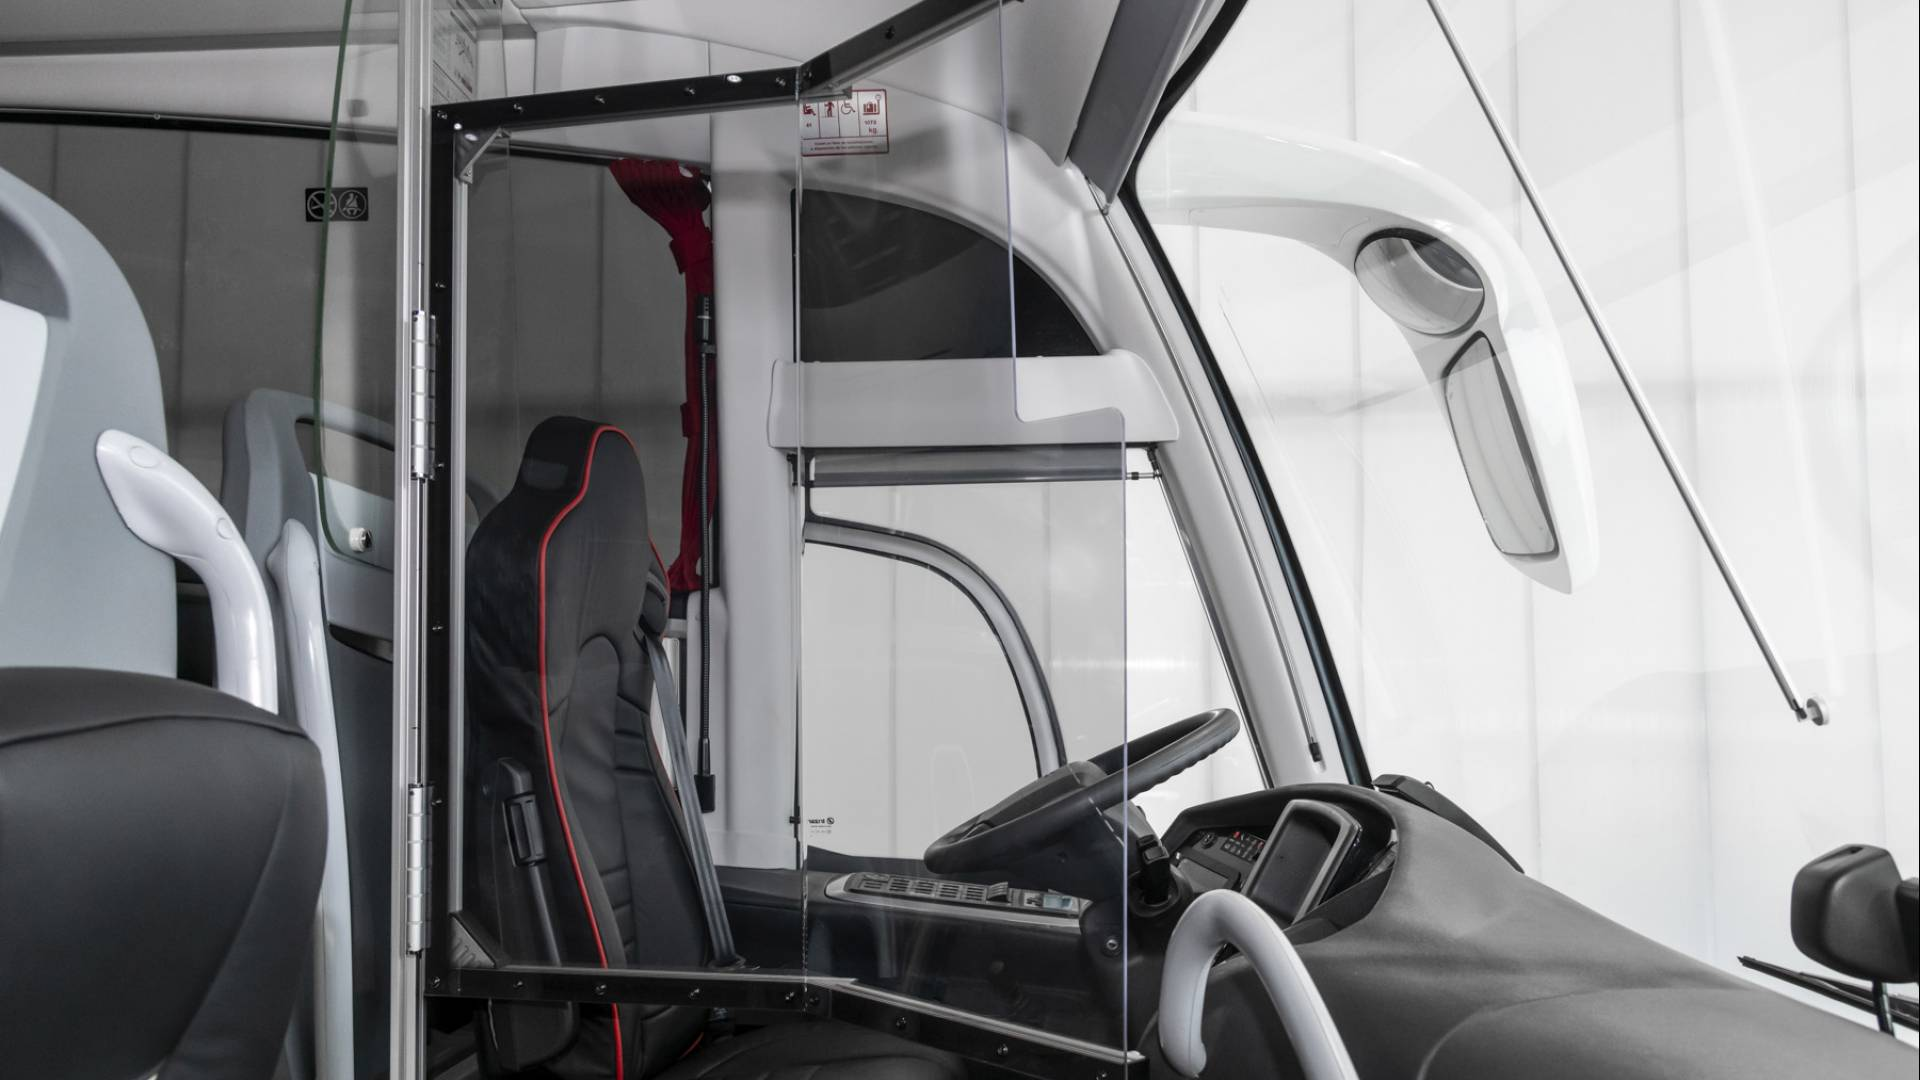 Driver's compartment partition panel, passenger seat protection panels and air purifier for minimising the risk of Covid-19 infection